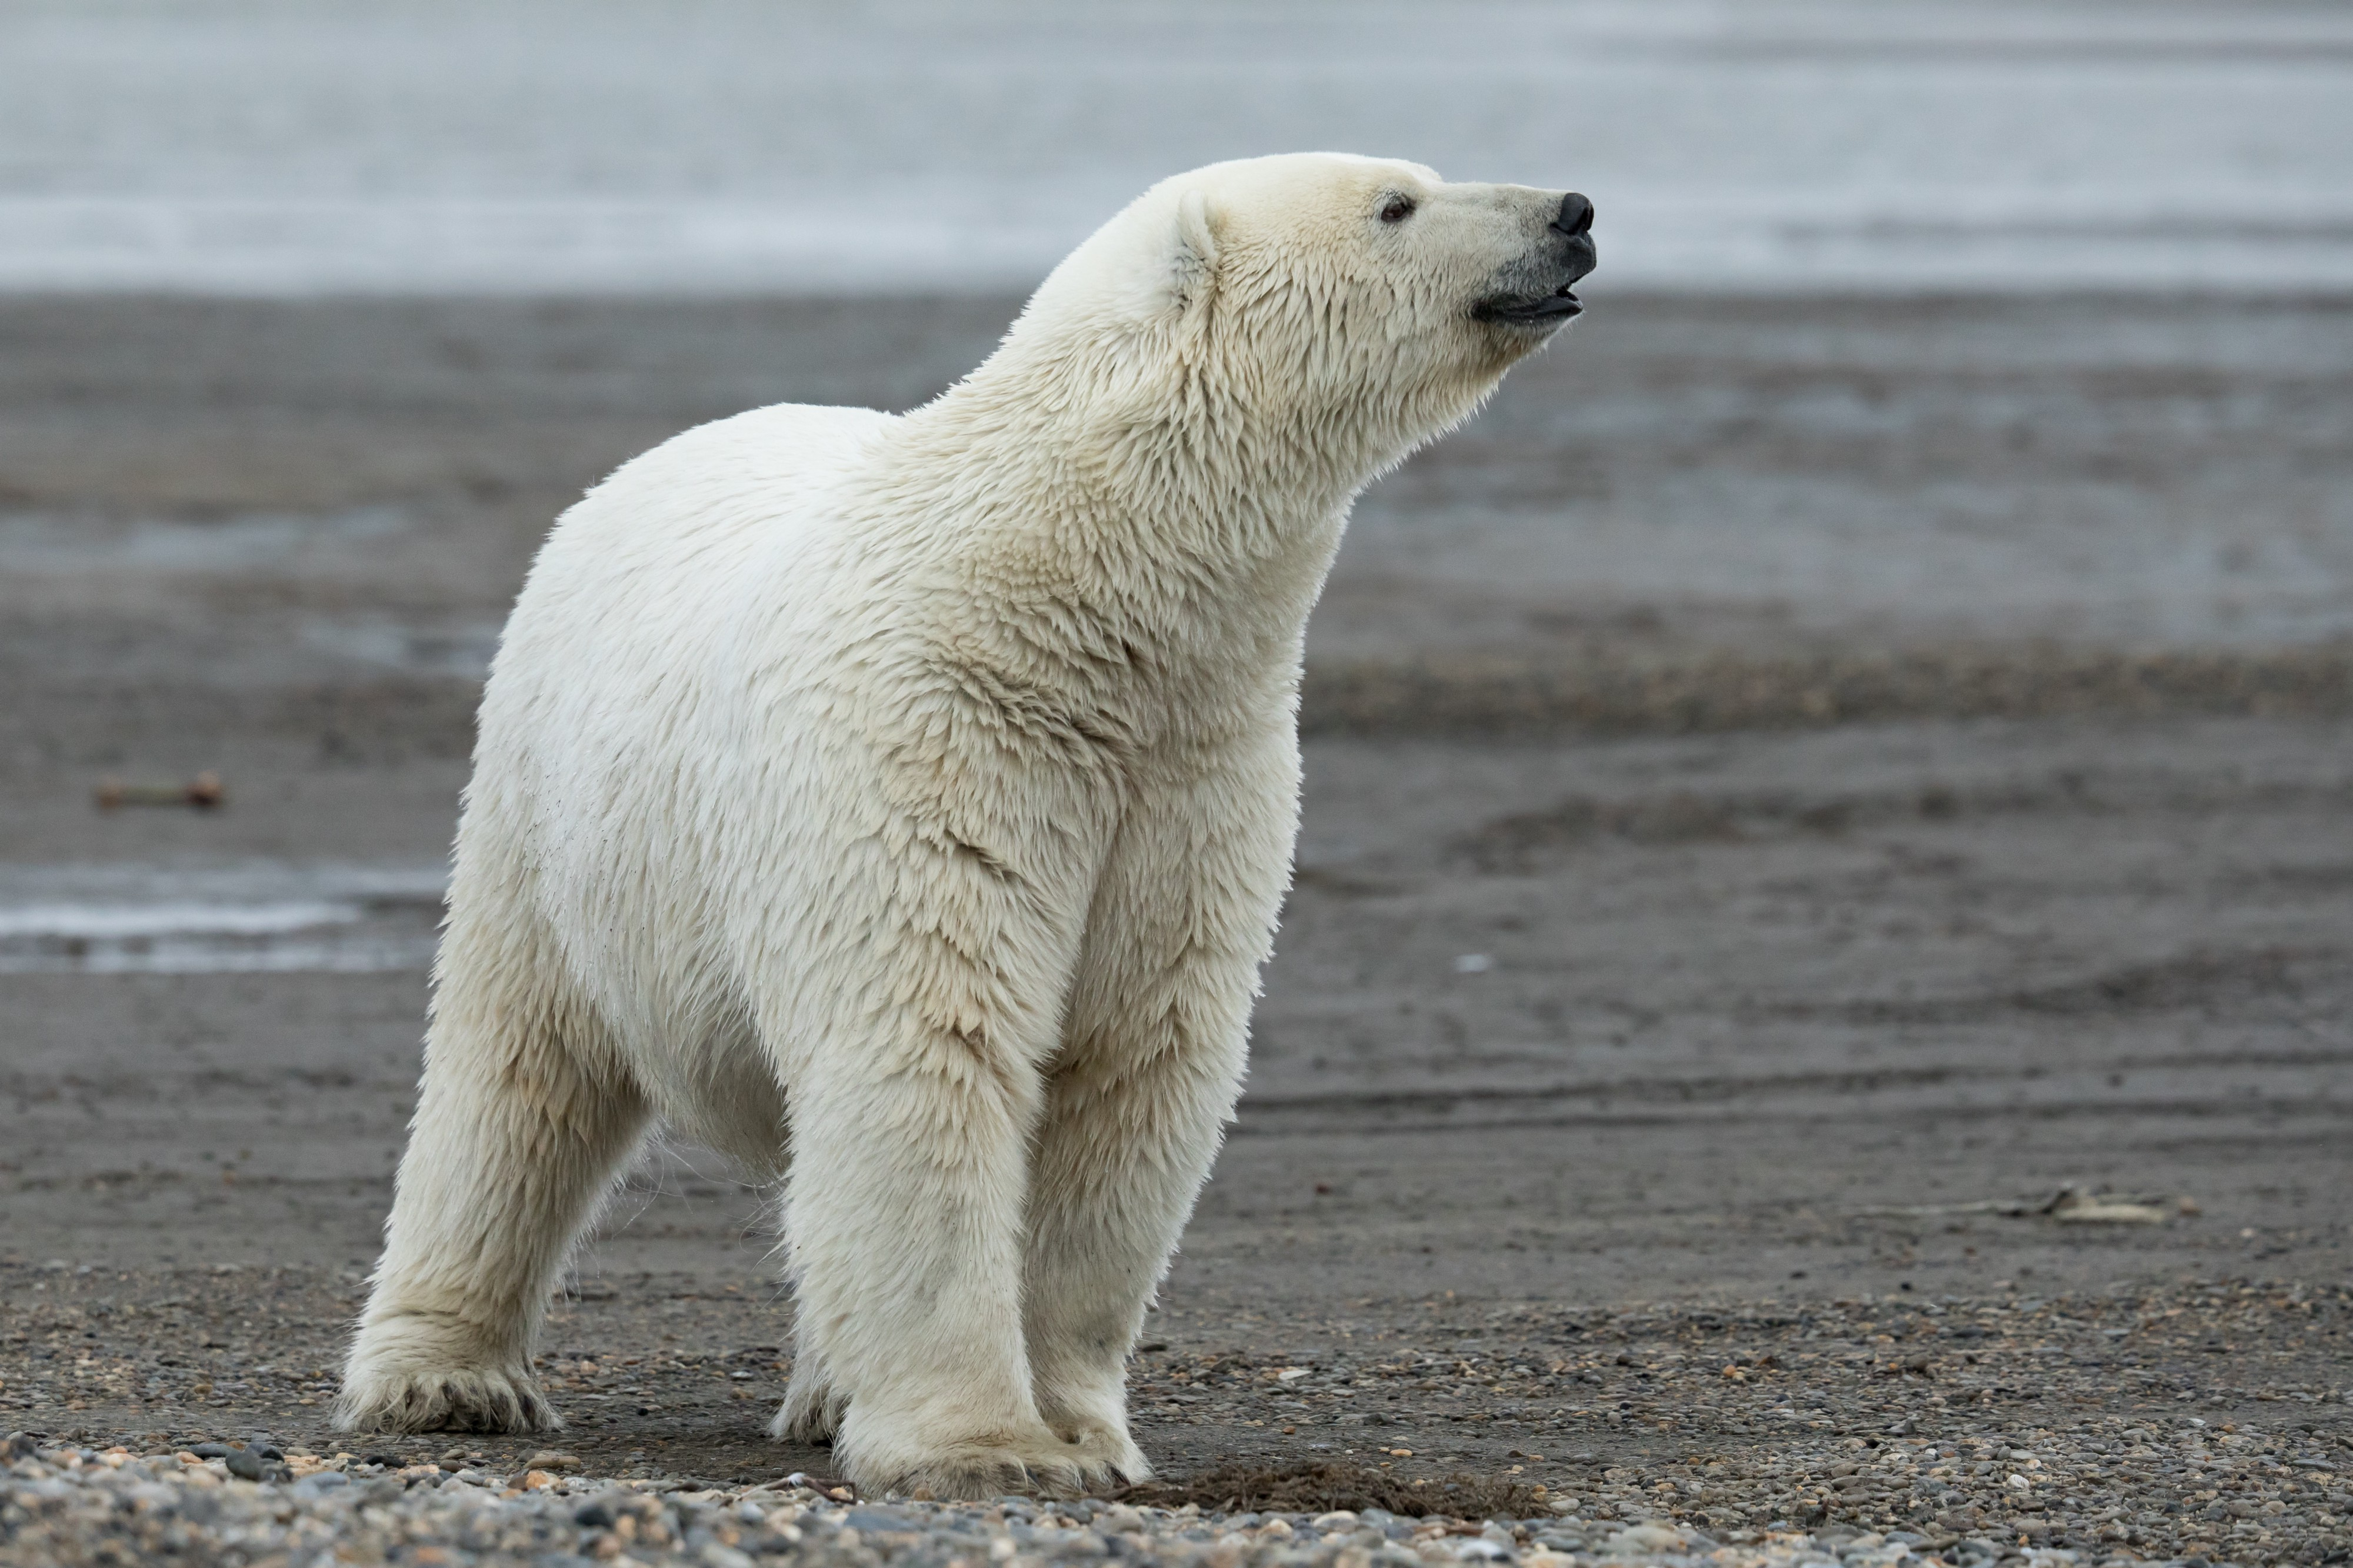 An adult polar bear with head lifted to the side, sniffing the air.